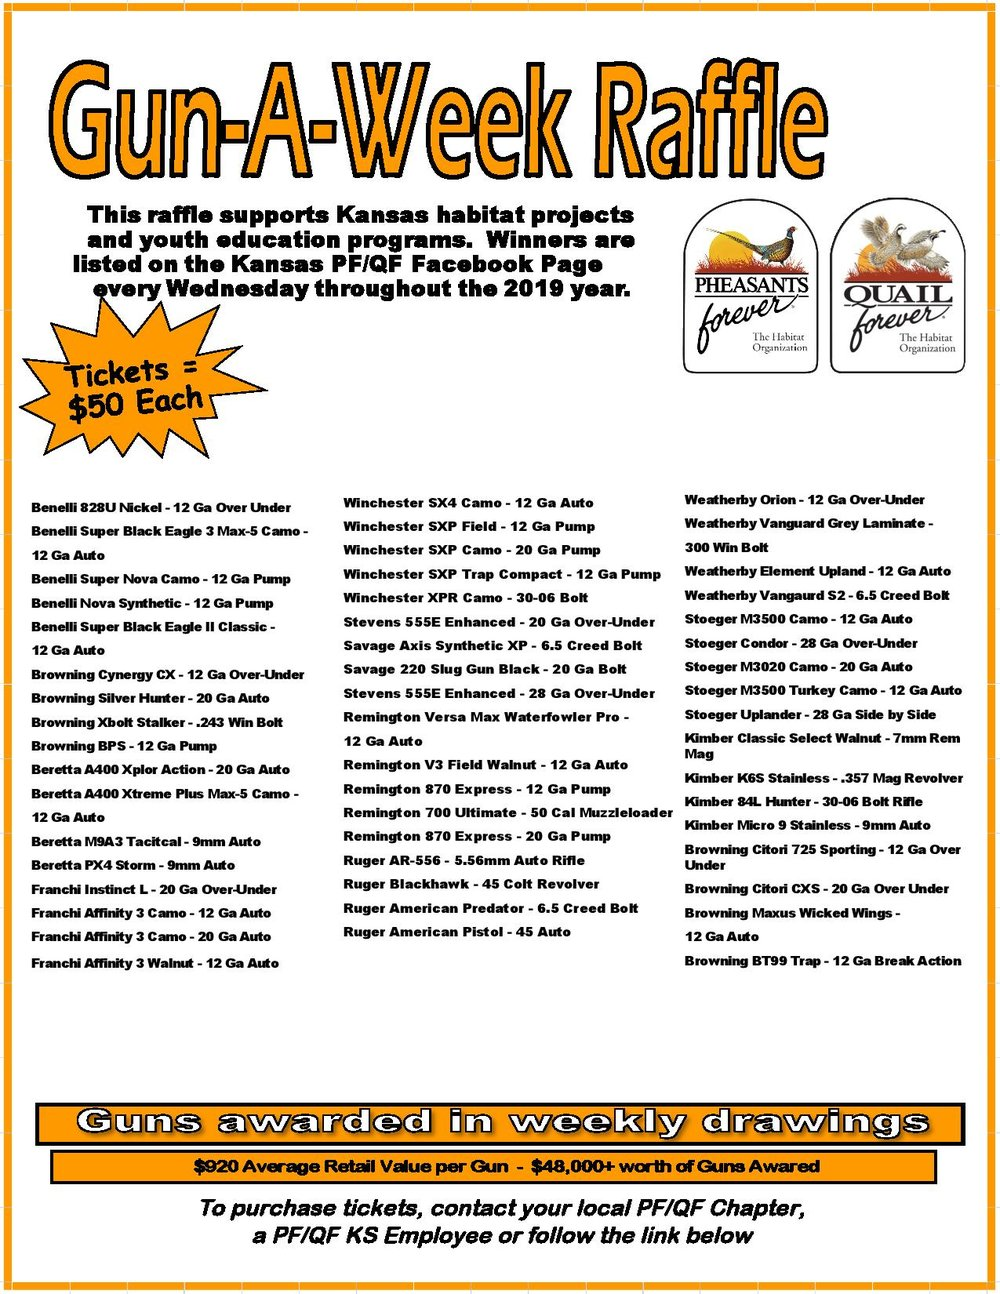 Gun-A-Week Raffle Flyer.jpg